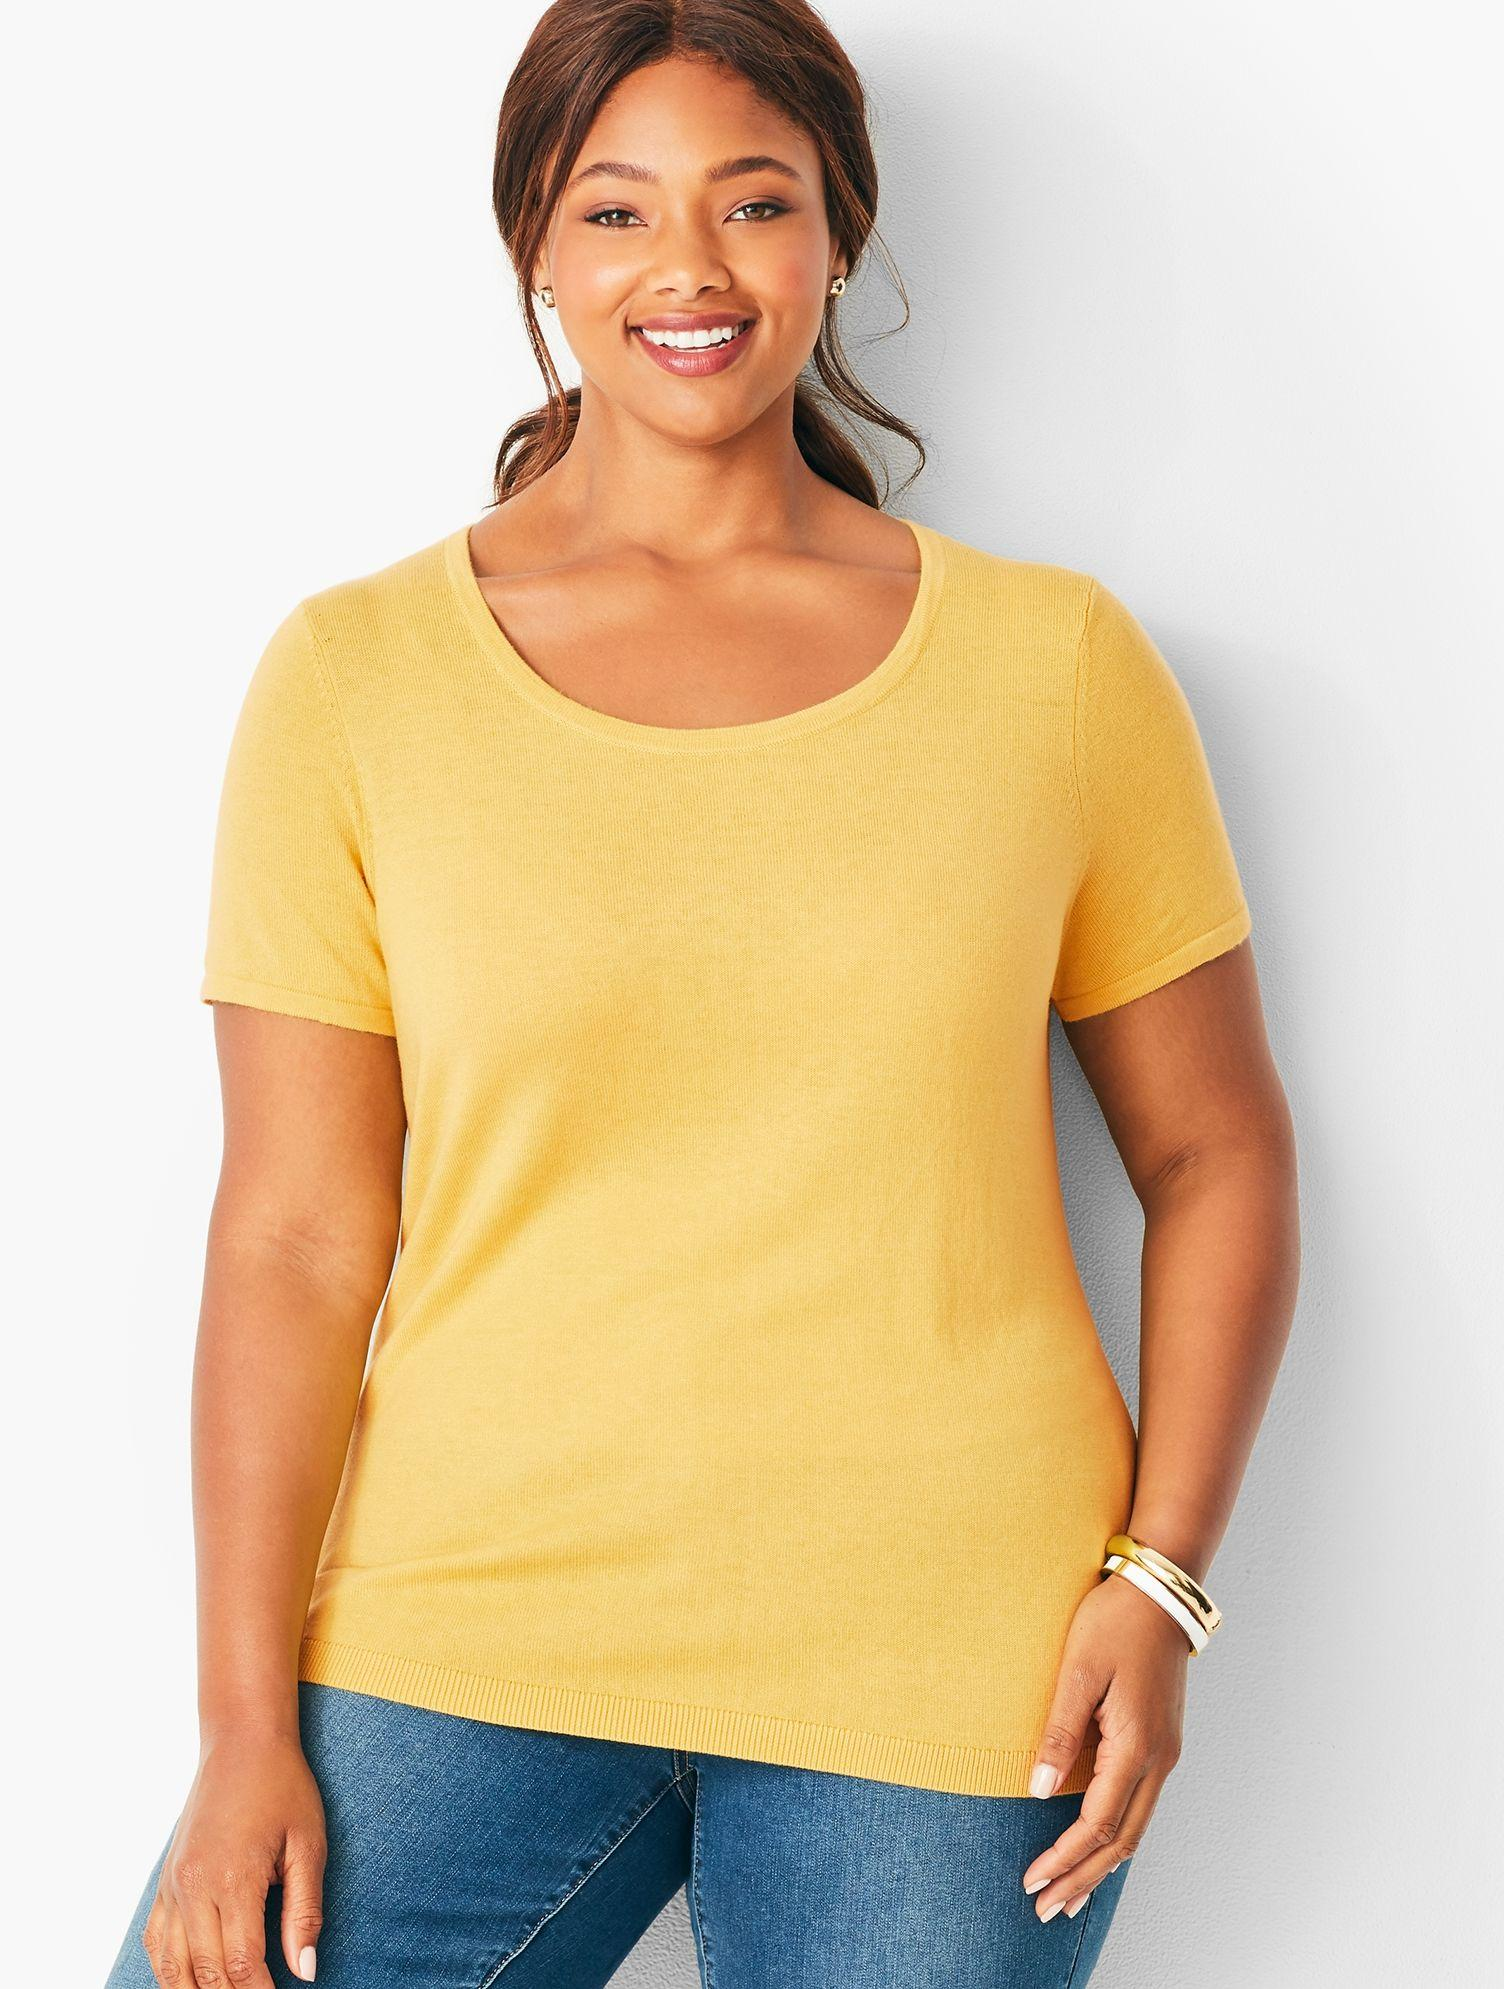 8e7d7b7d Lyst - Talbots Plus Size Short Sleeve Charming Shell in Yellow